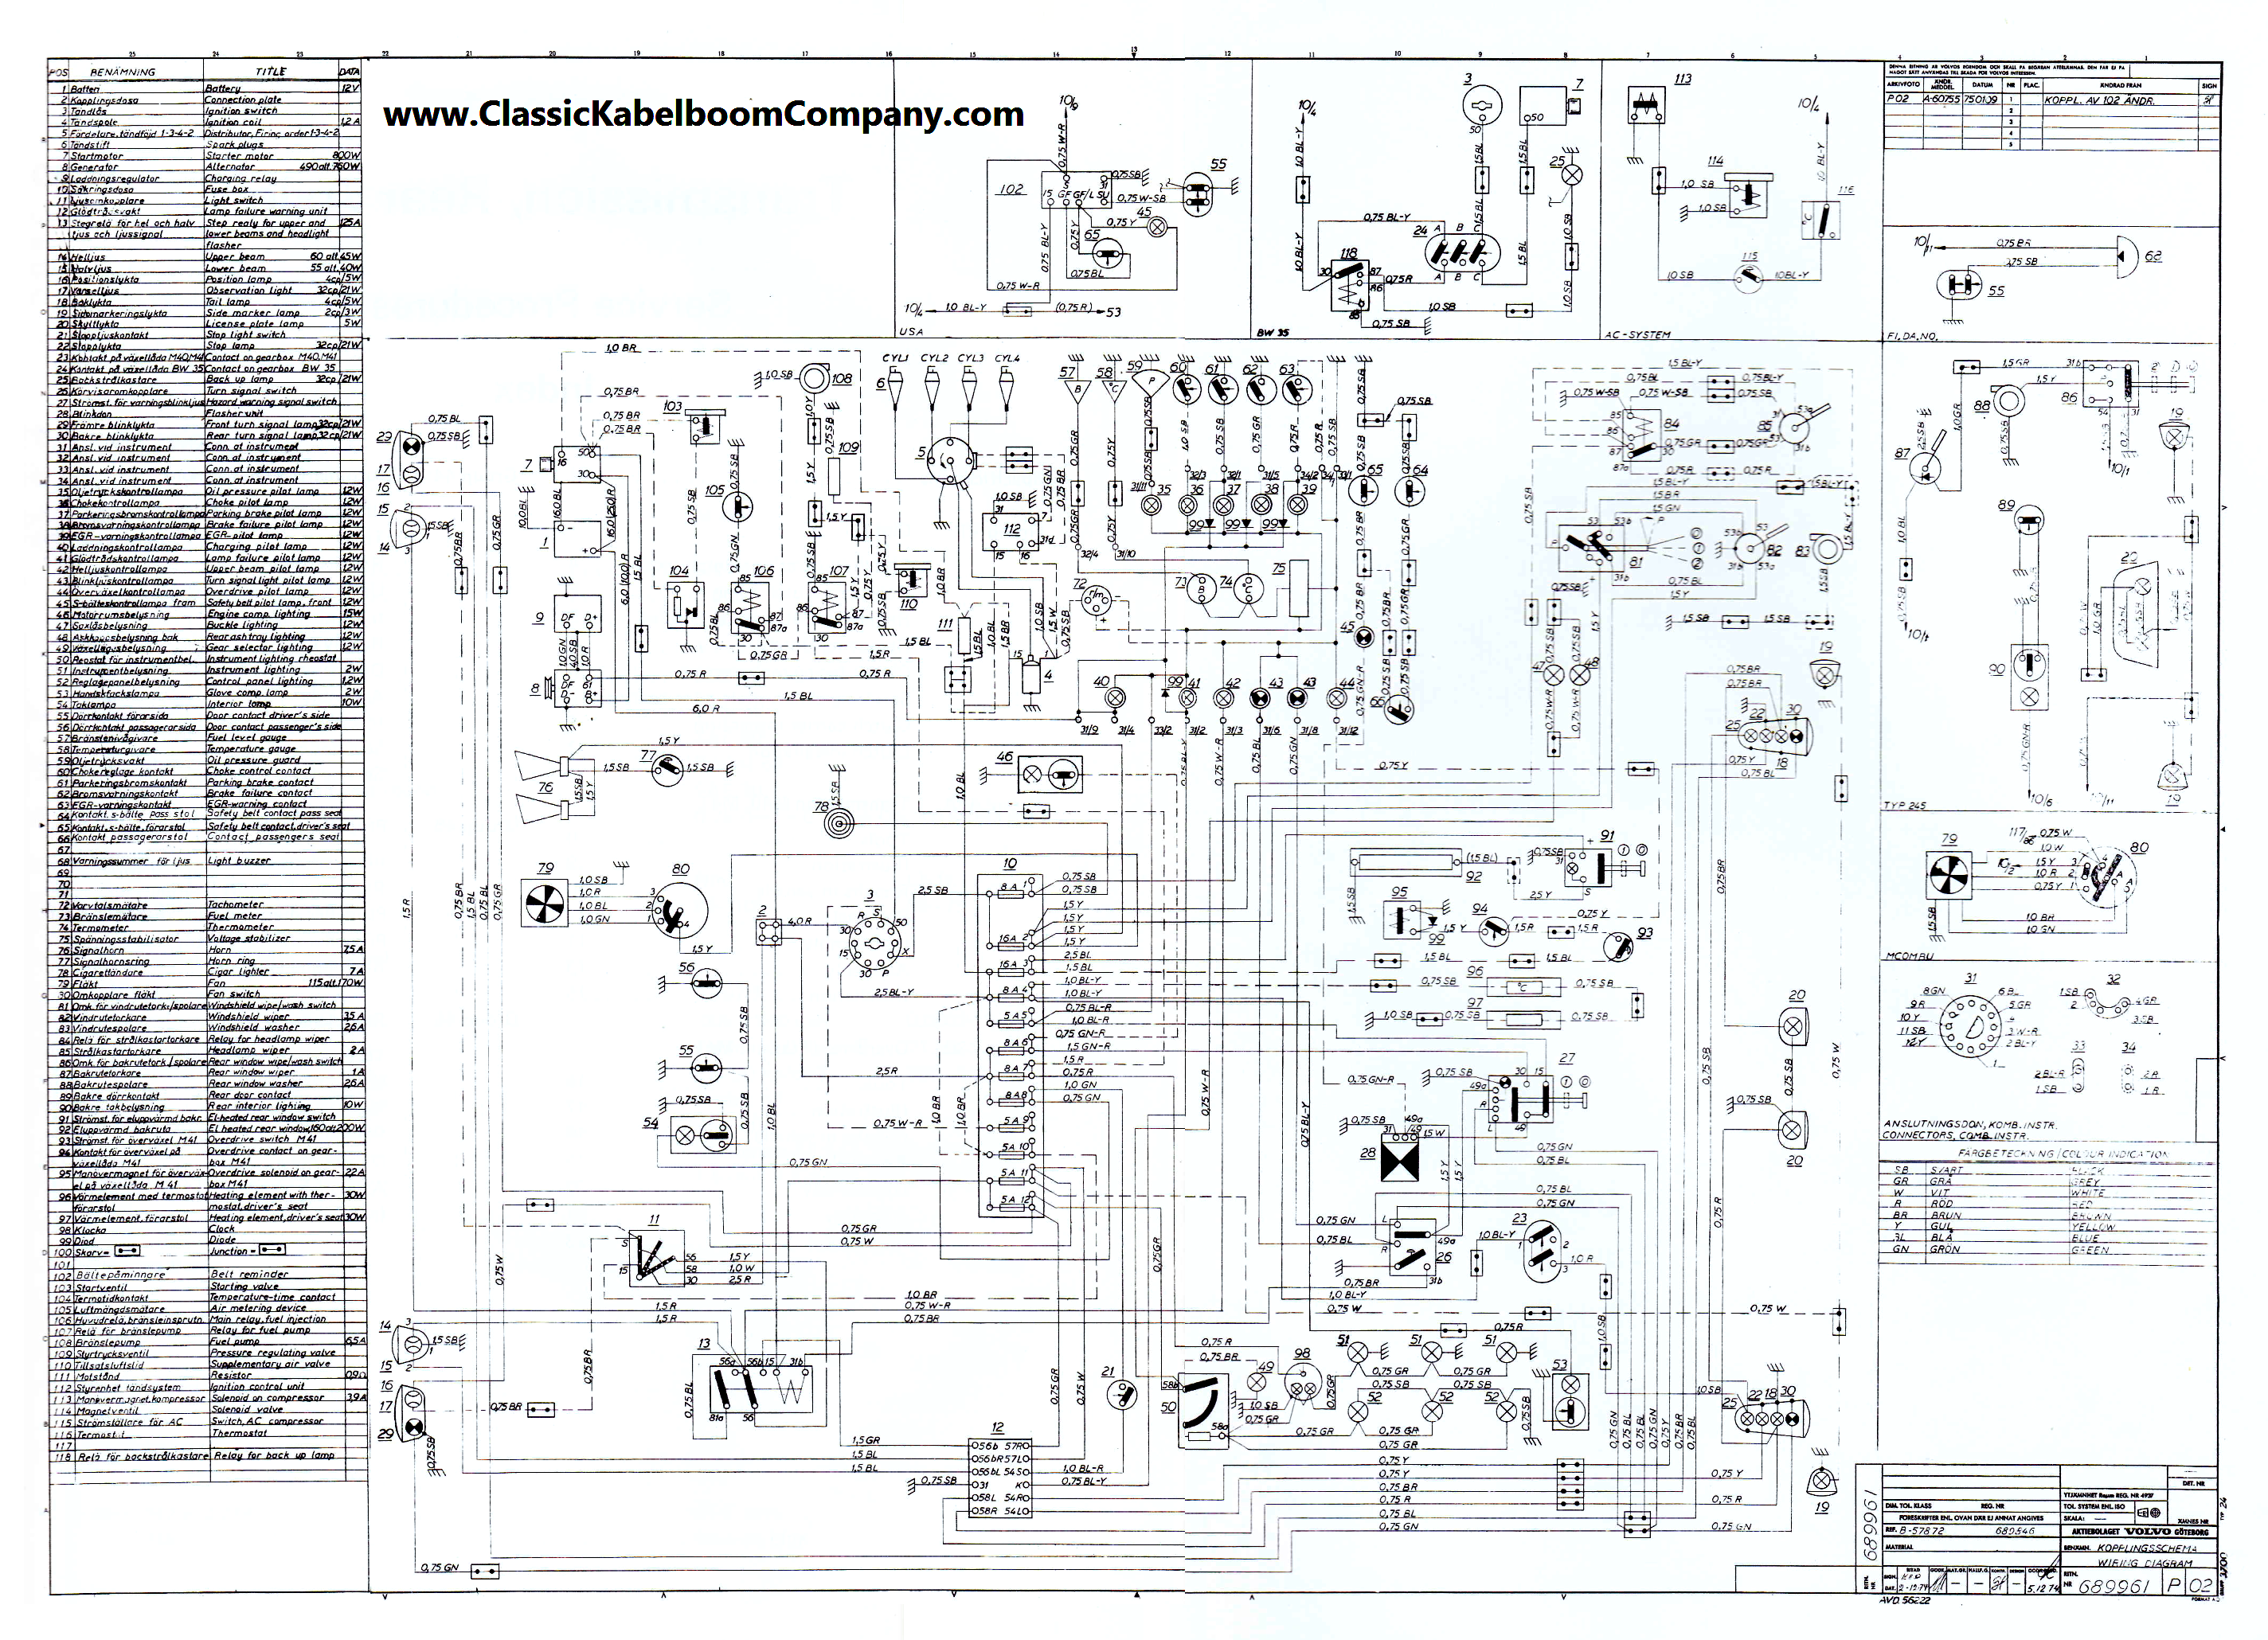 Fuses  20Allocation 20and 20Troubleshooting together with Showthread moreover Volvo 240 1998 Wiring Diagram additionally 740 89 as well P 0900c152801e4a1e. on 1991 volvo 740 wiring diagrams